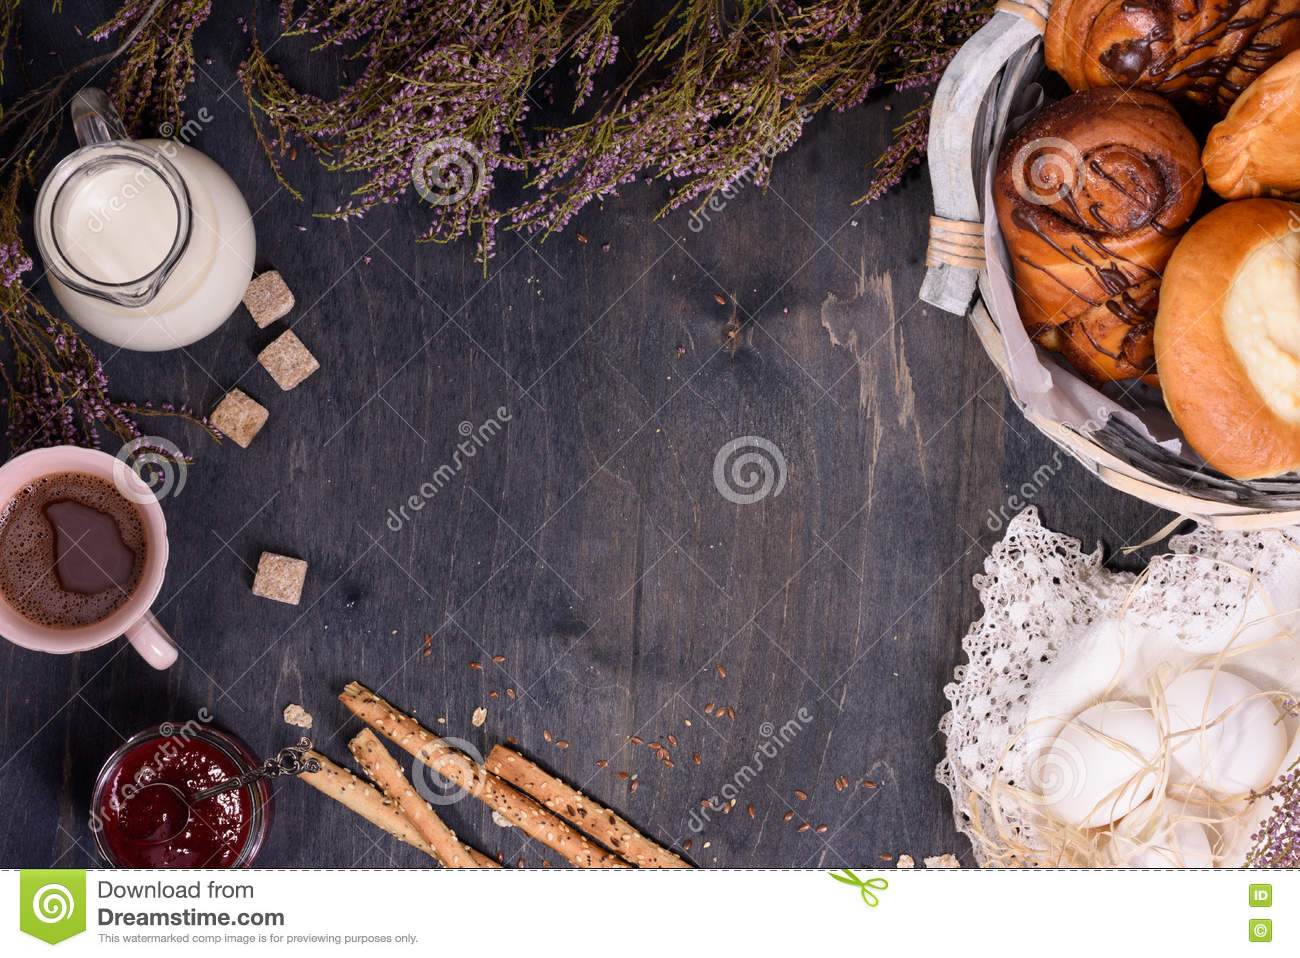 Bakery background with eggs, milk, sugar and sweet confectionery. Wooden table, copy space, top view.